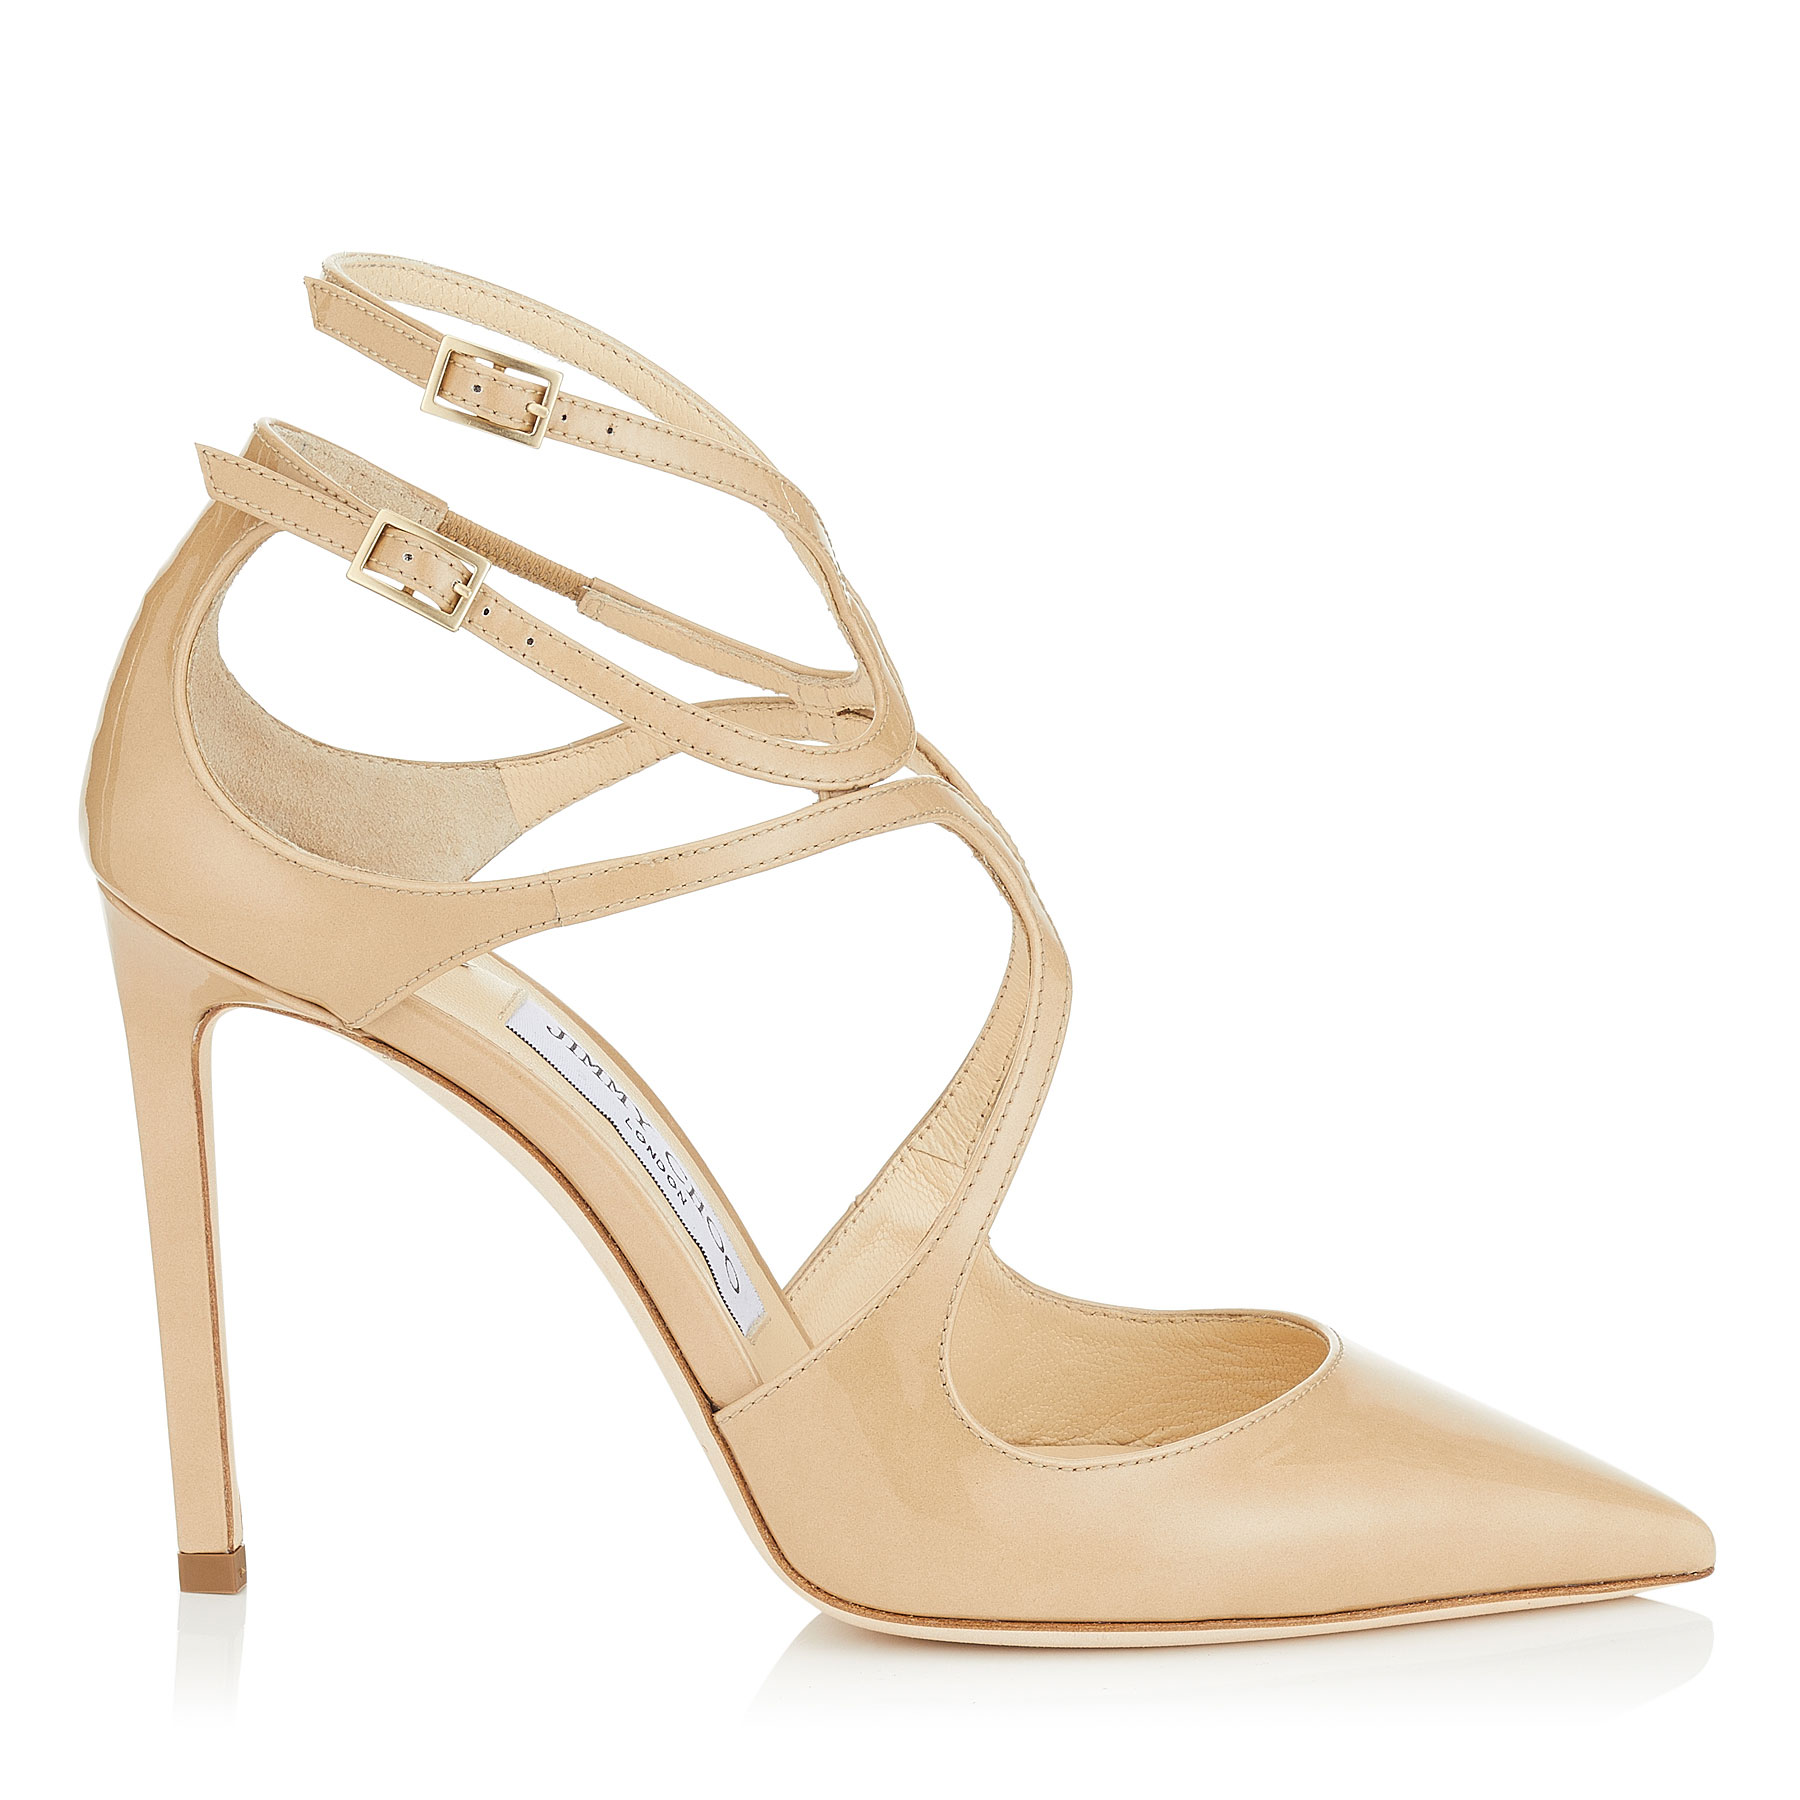 LANCER 100 Nude Patent Leather Pointy Toe Pumps by Jimmy Choo